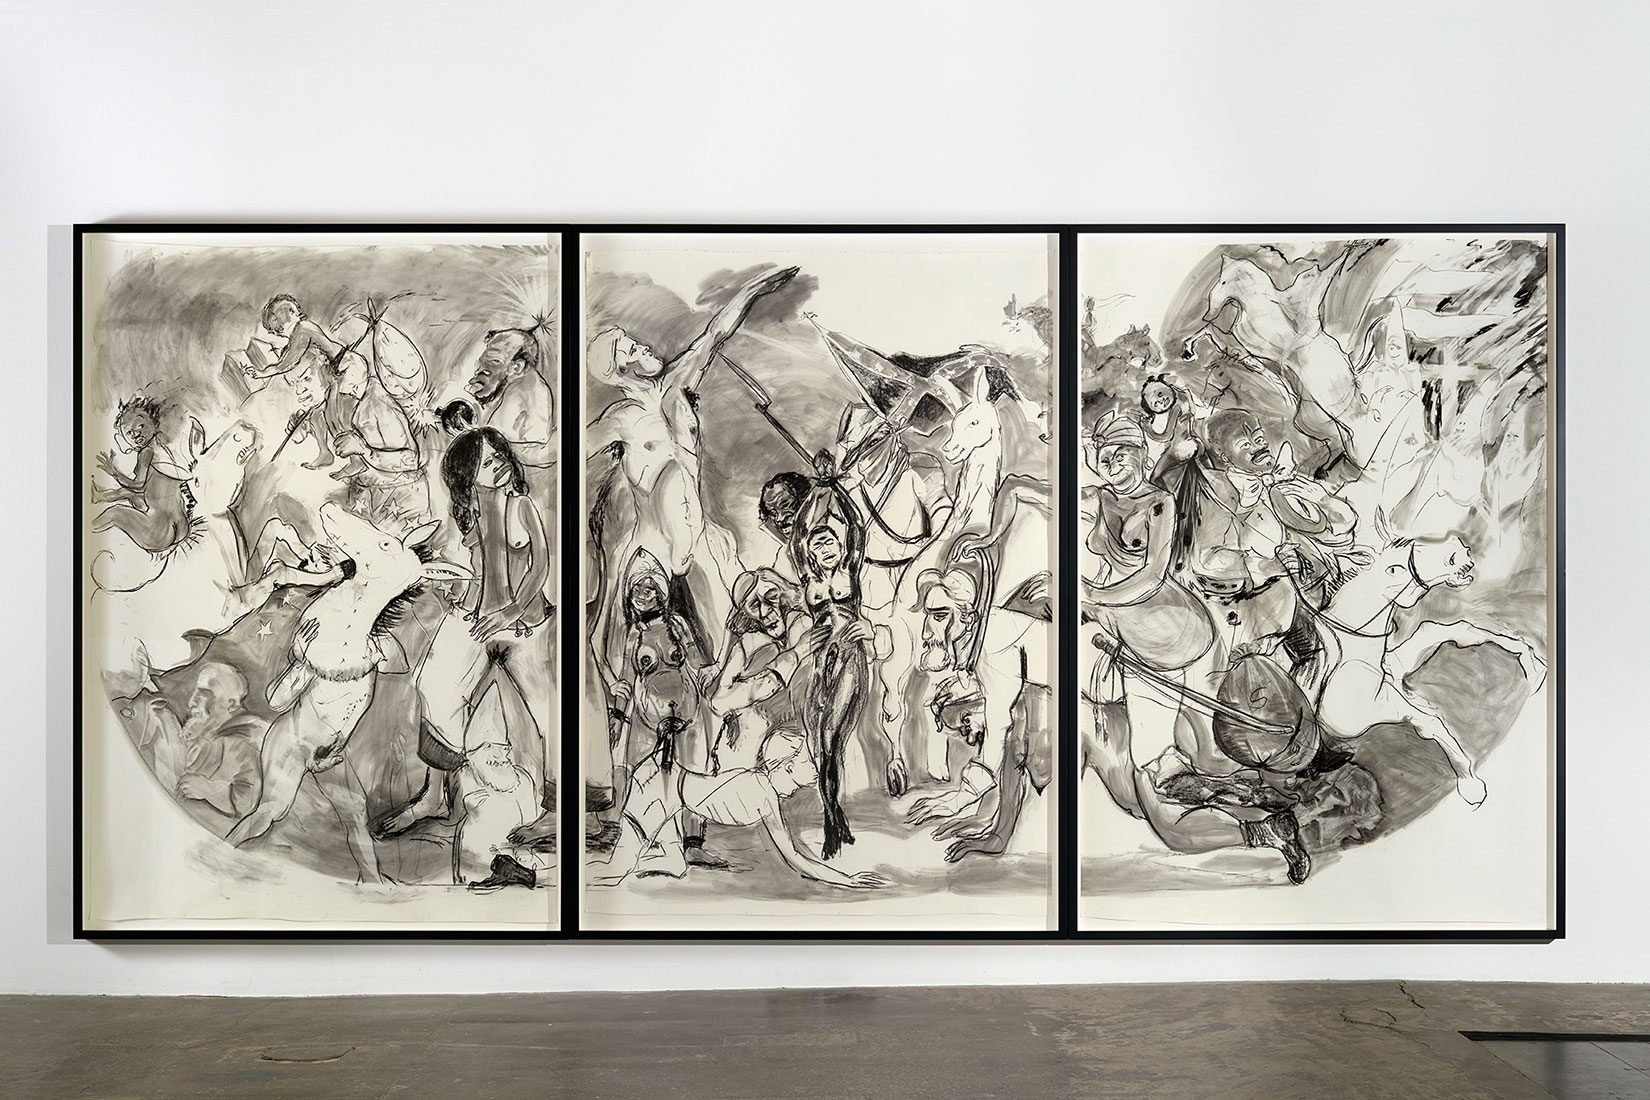 ffca72076f3 Collection Highlights  Museum of Modern Art s 2015-16 Acquisitions Include  More than 50 Works by African American Artists